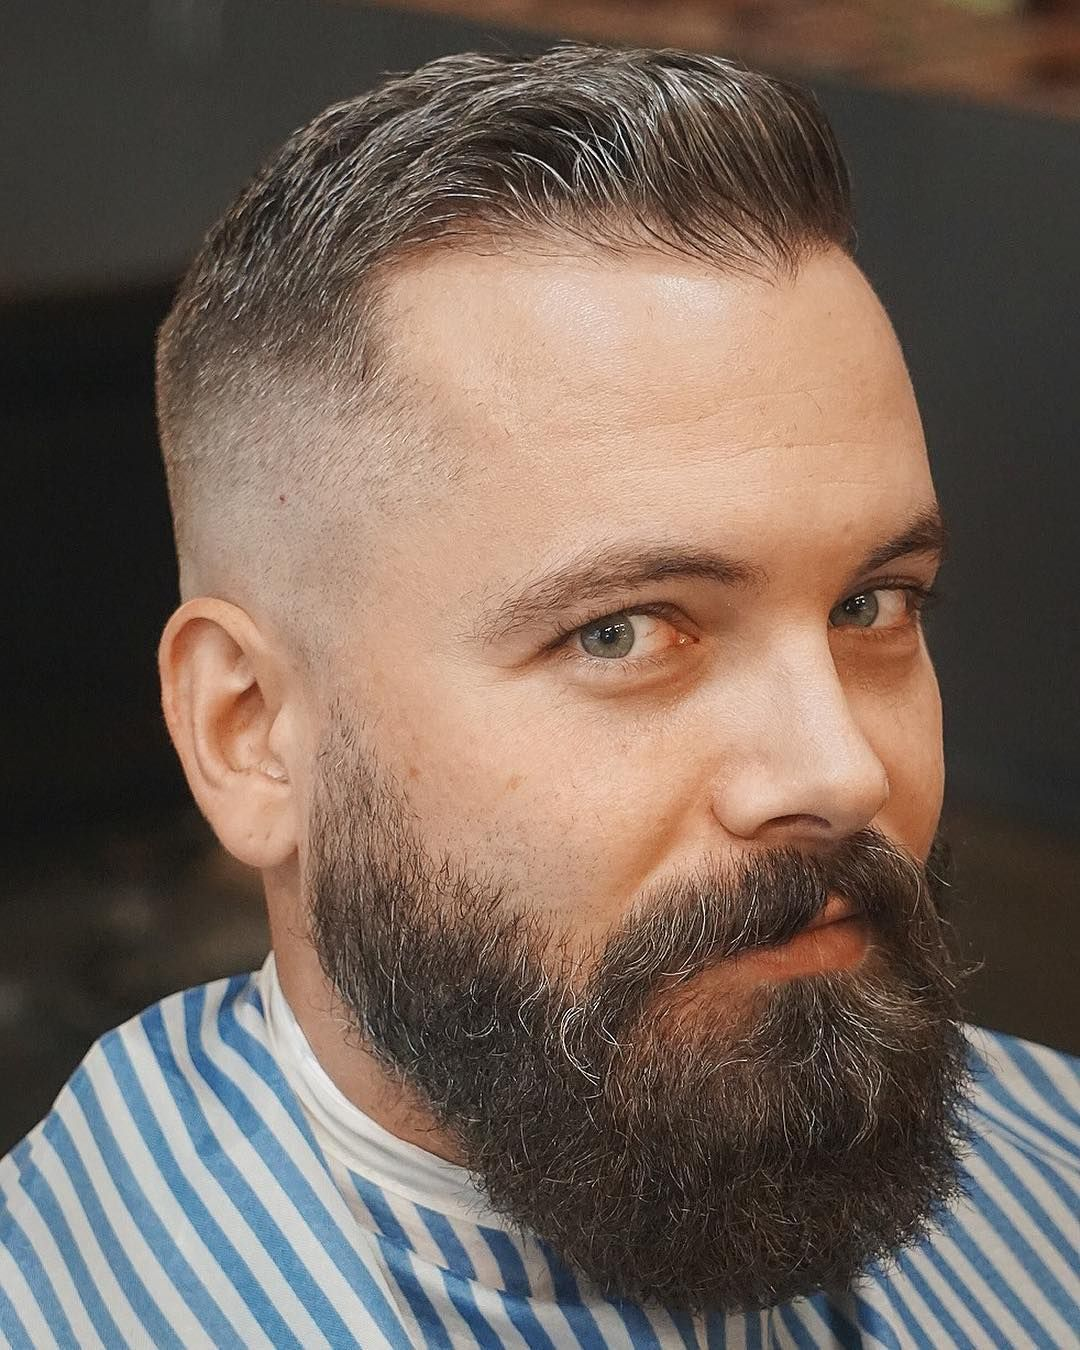 20 Hairstyles For Men With Thin Hair Add More Volume Haircuts For Balding Men Hair Loss Men Balding Mens Hairstyles